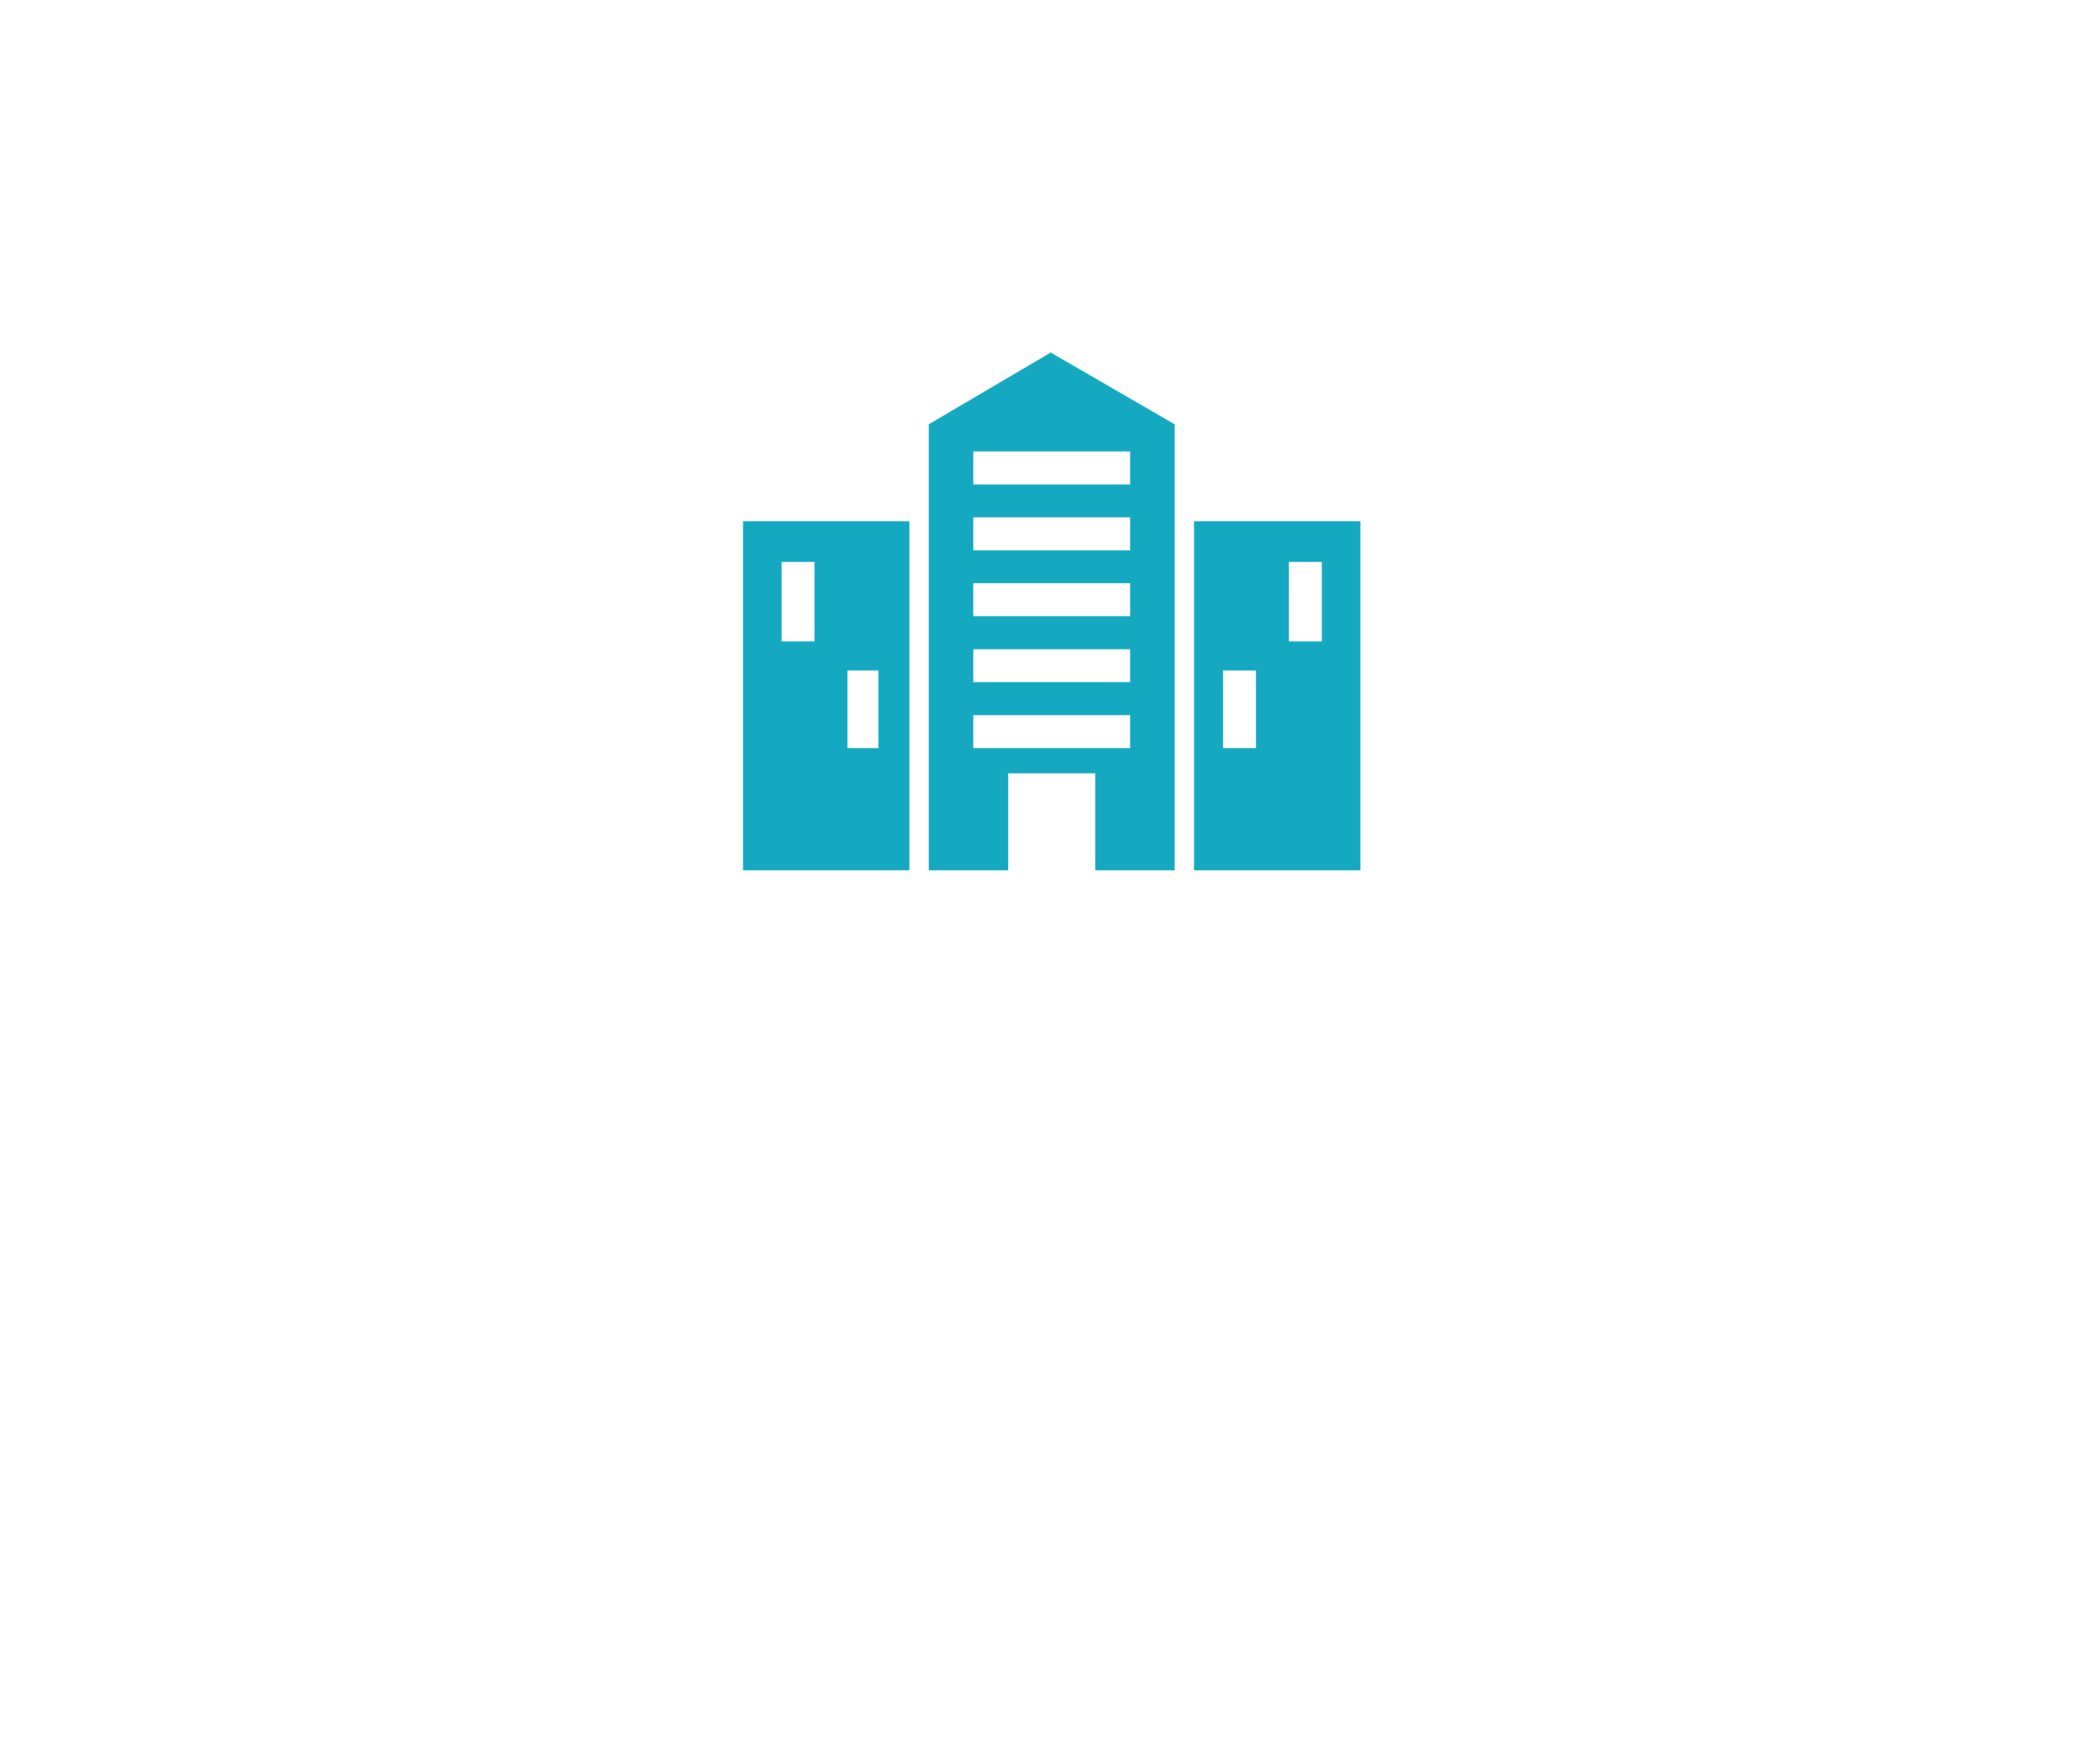 Lynwood Holdings